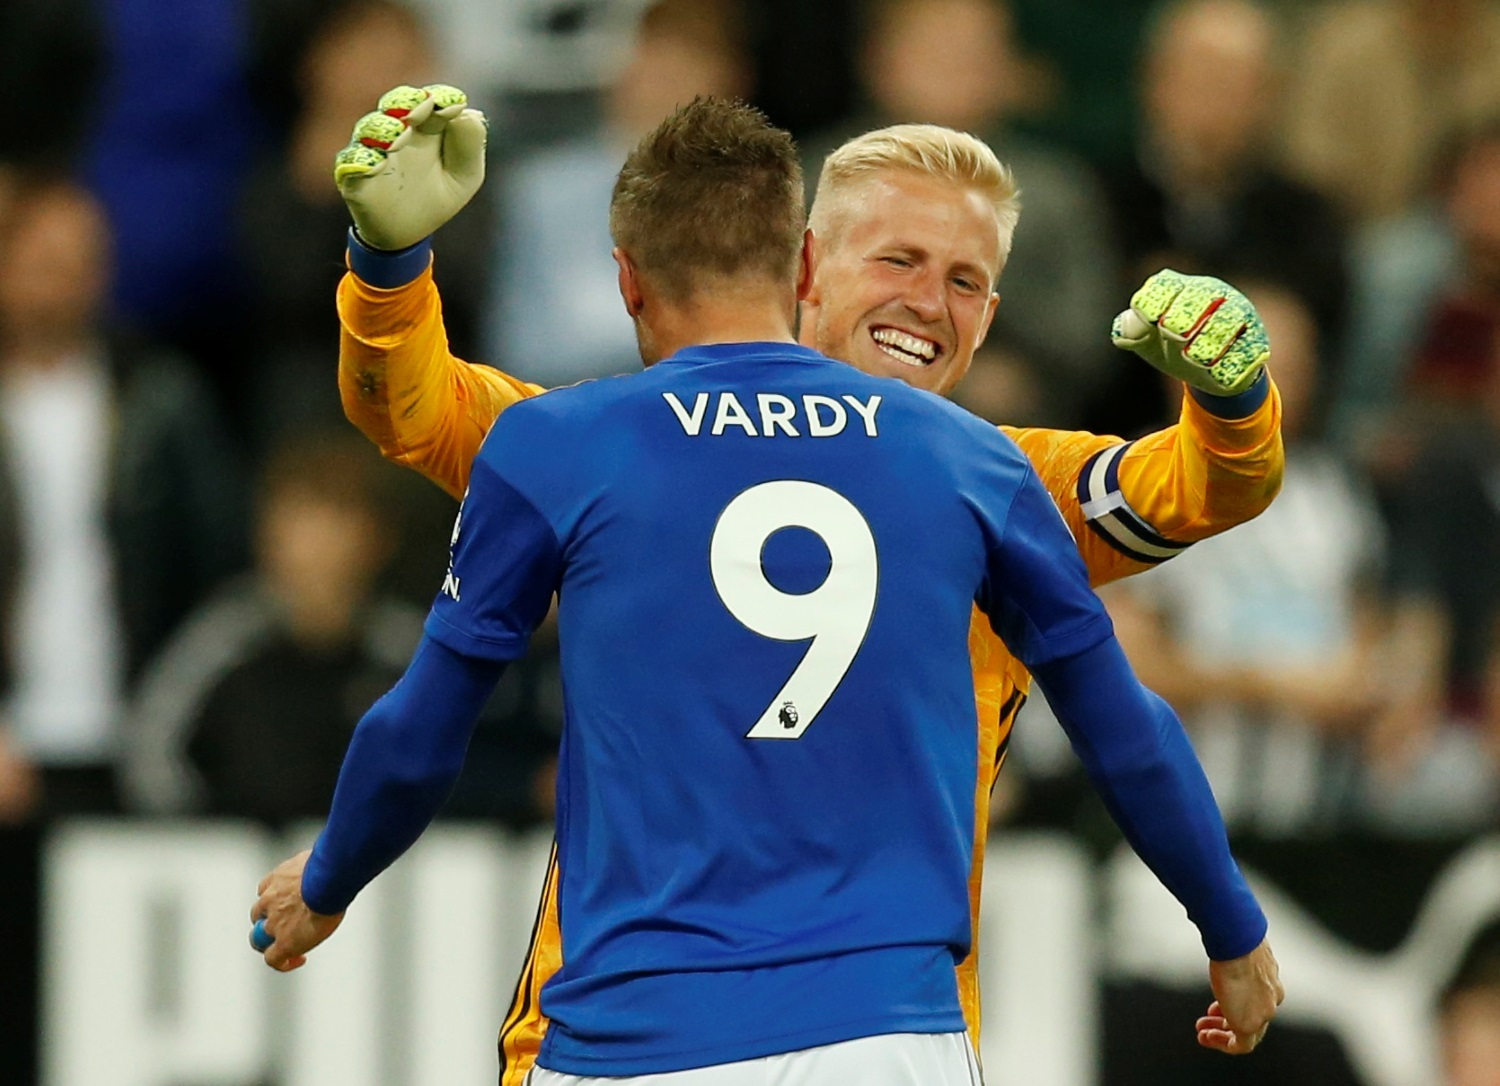 Newcastle United 1-1 Leicester City (Leicester won 4-2 on penalties)